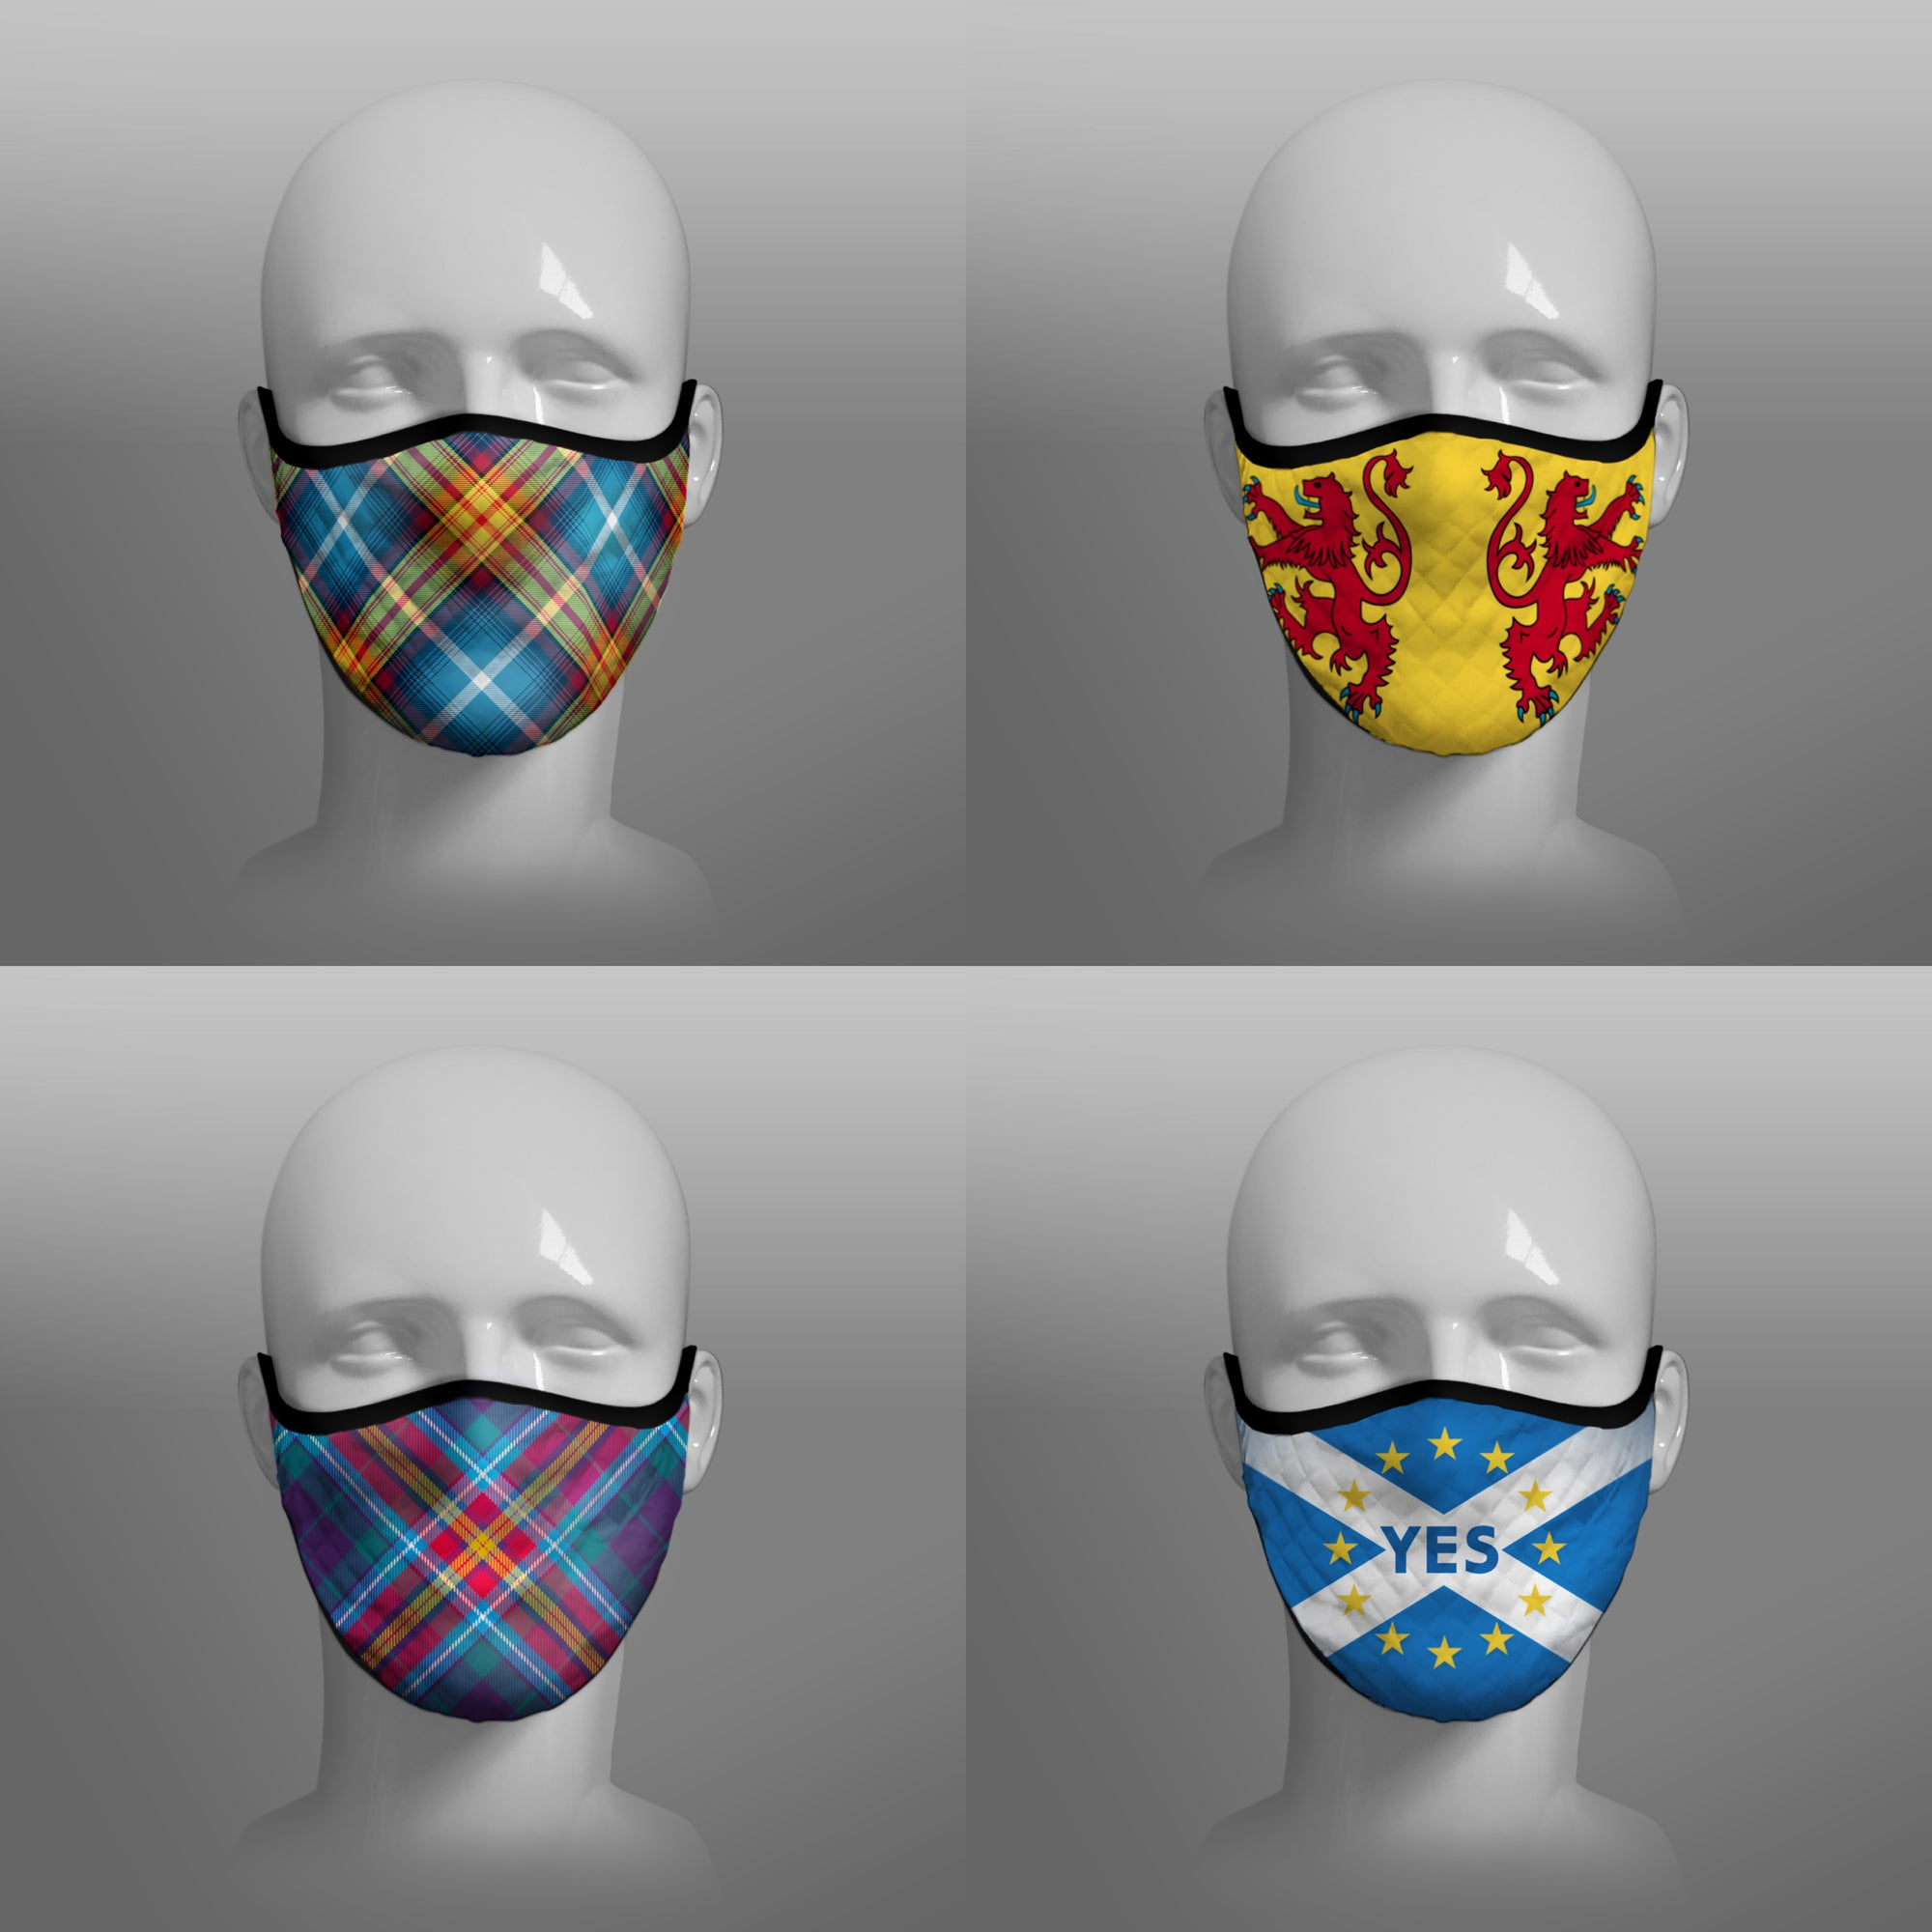 Tartan Face coverings - small face masks by Steven Patrick Sim the Tartan Artisan - including Declaration of Arbroath Scottish Independence - Lion Rampant - YES Alba Gu Brath - Scottish Saltire Pro EU